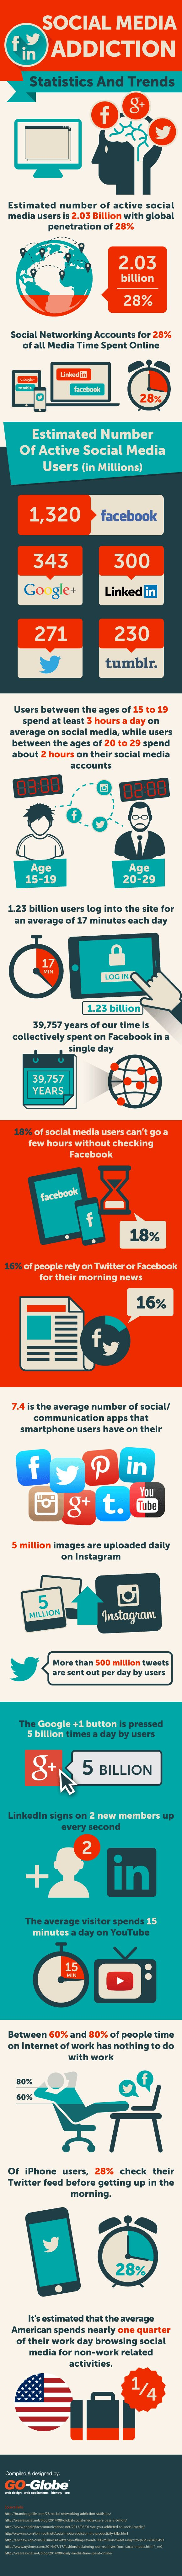 Social Media Addiction – Statistics and Trends - #infographic #Socialnetworking